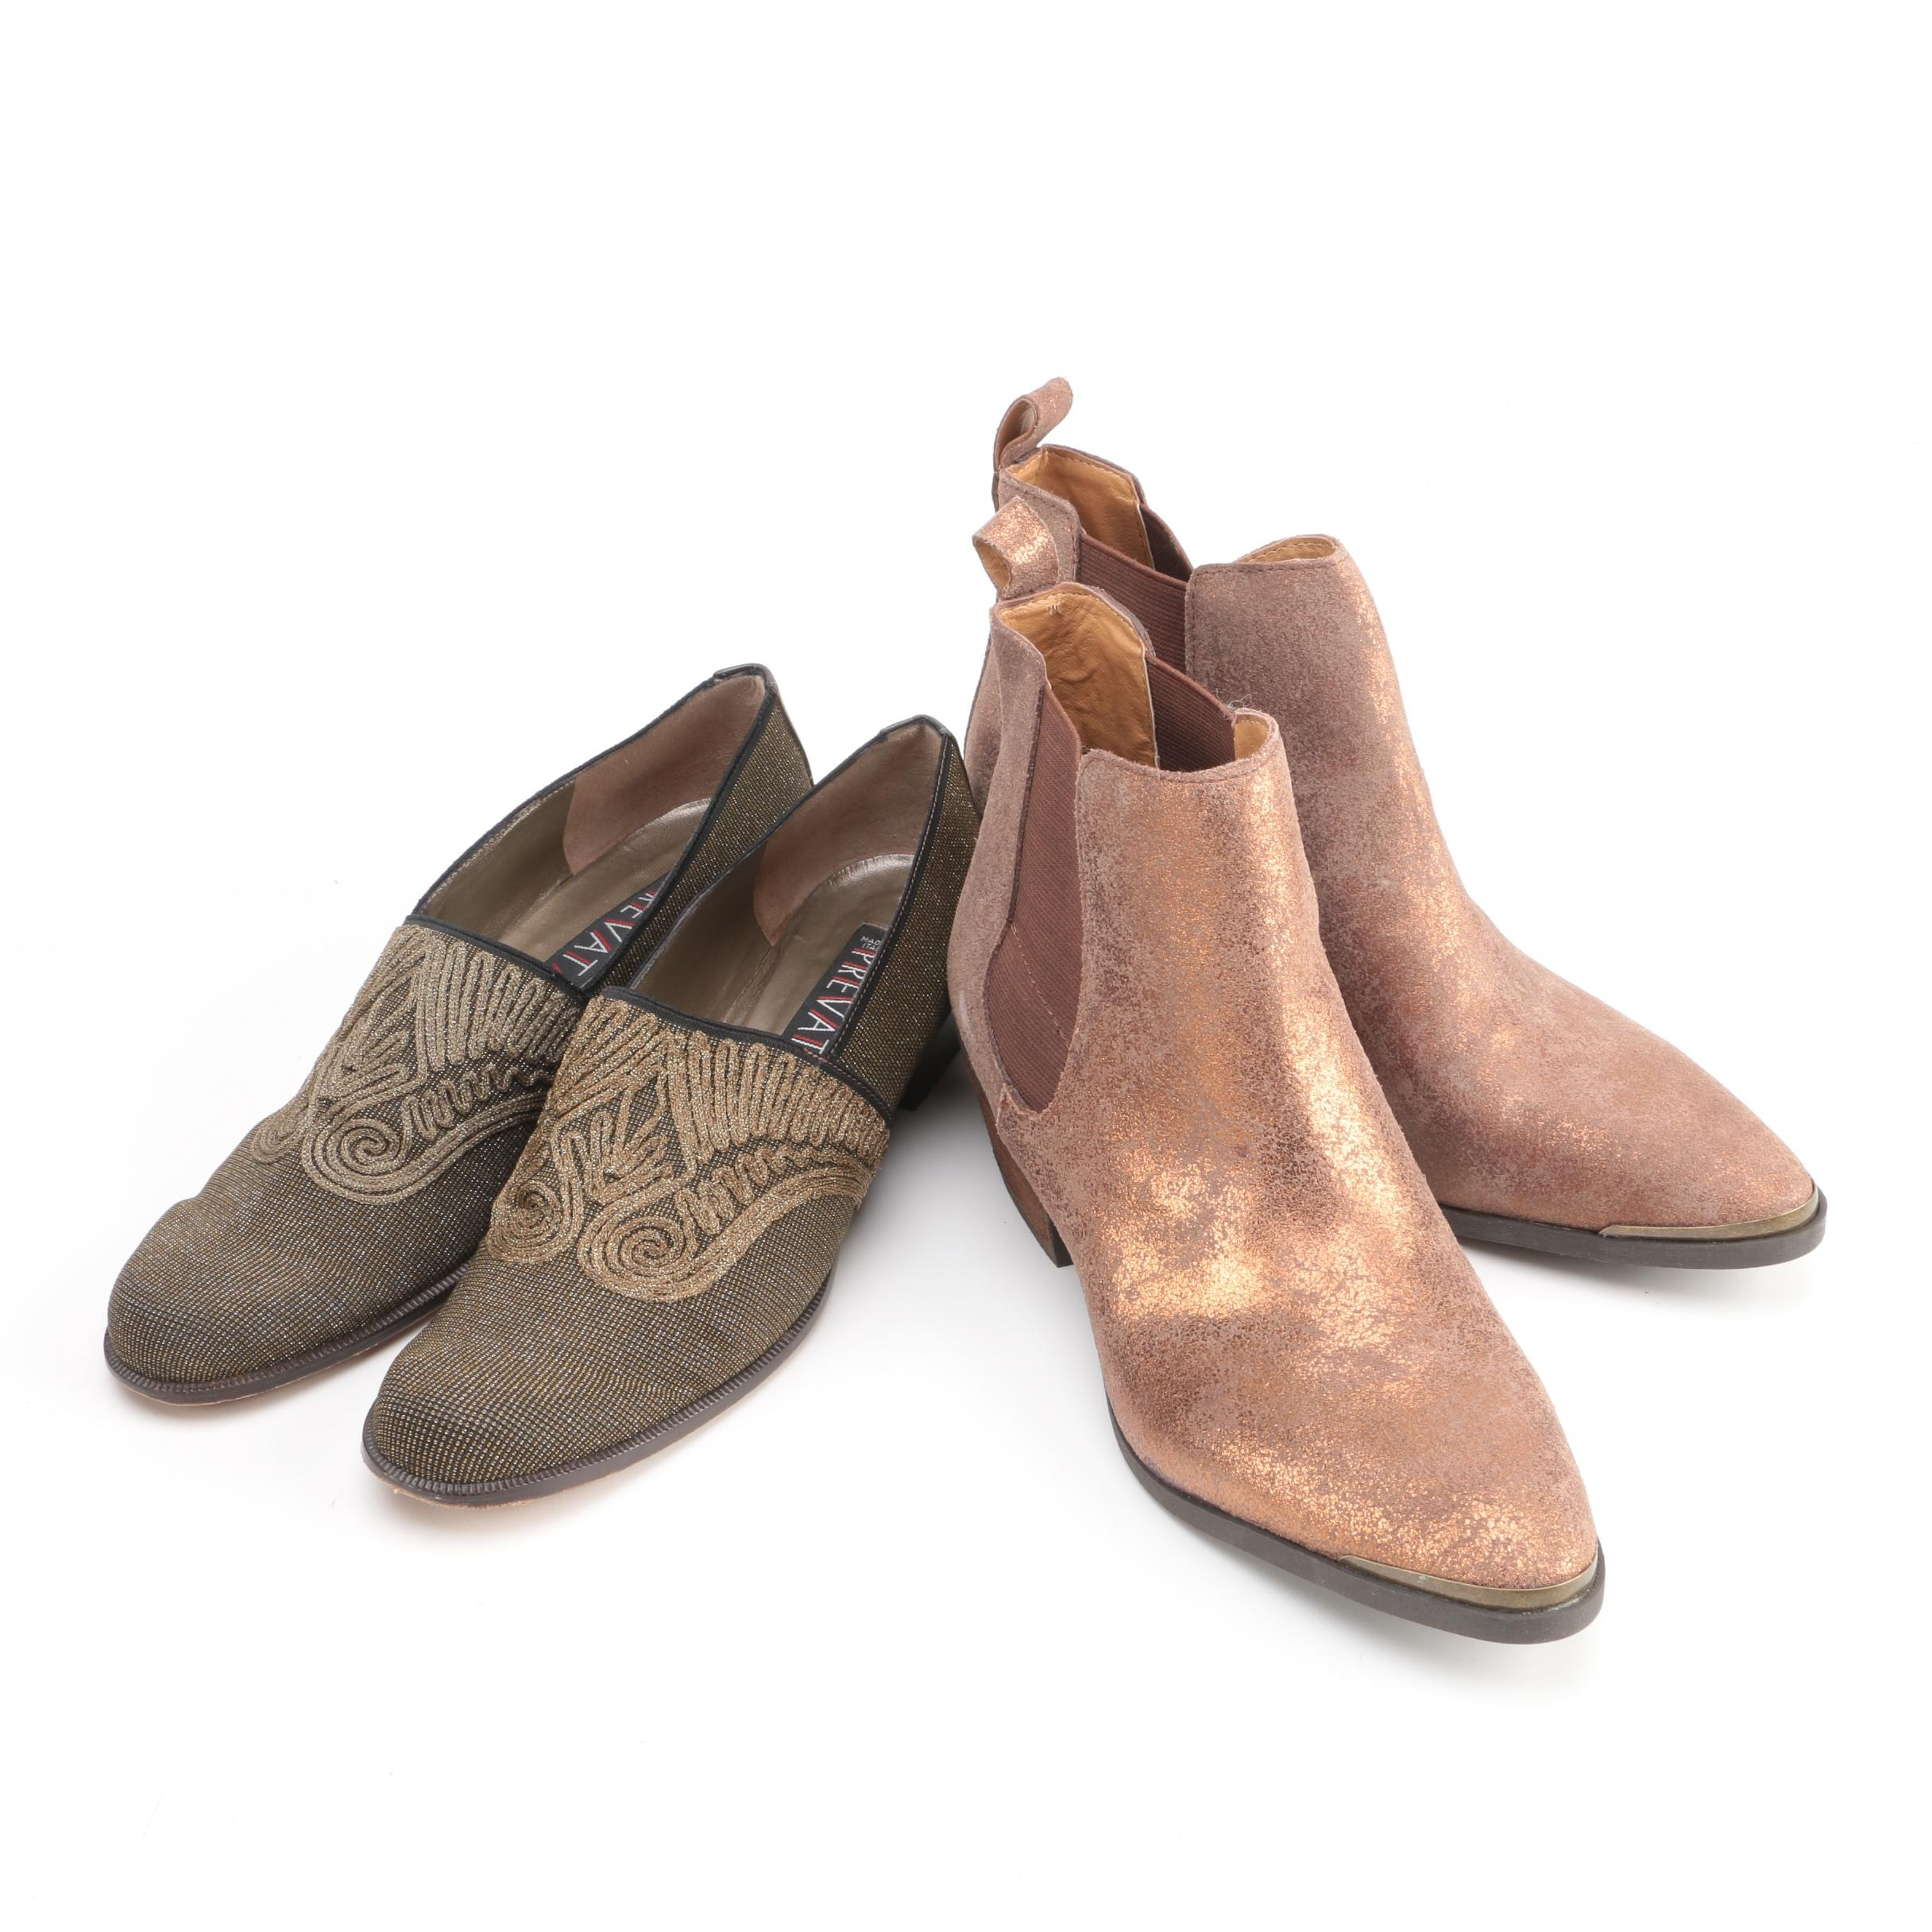 Prevata Embroidered Pumps and Ralph Lauren Denim & Supply Leather Booties